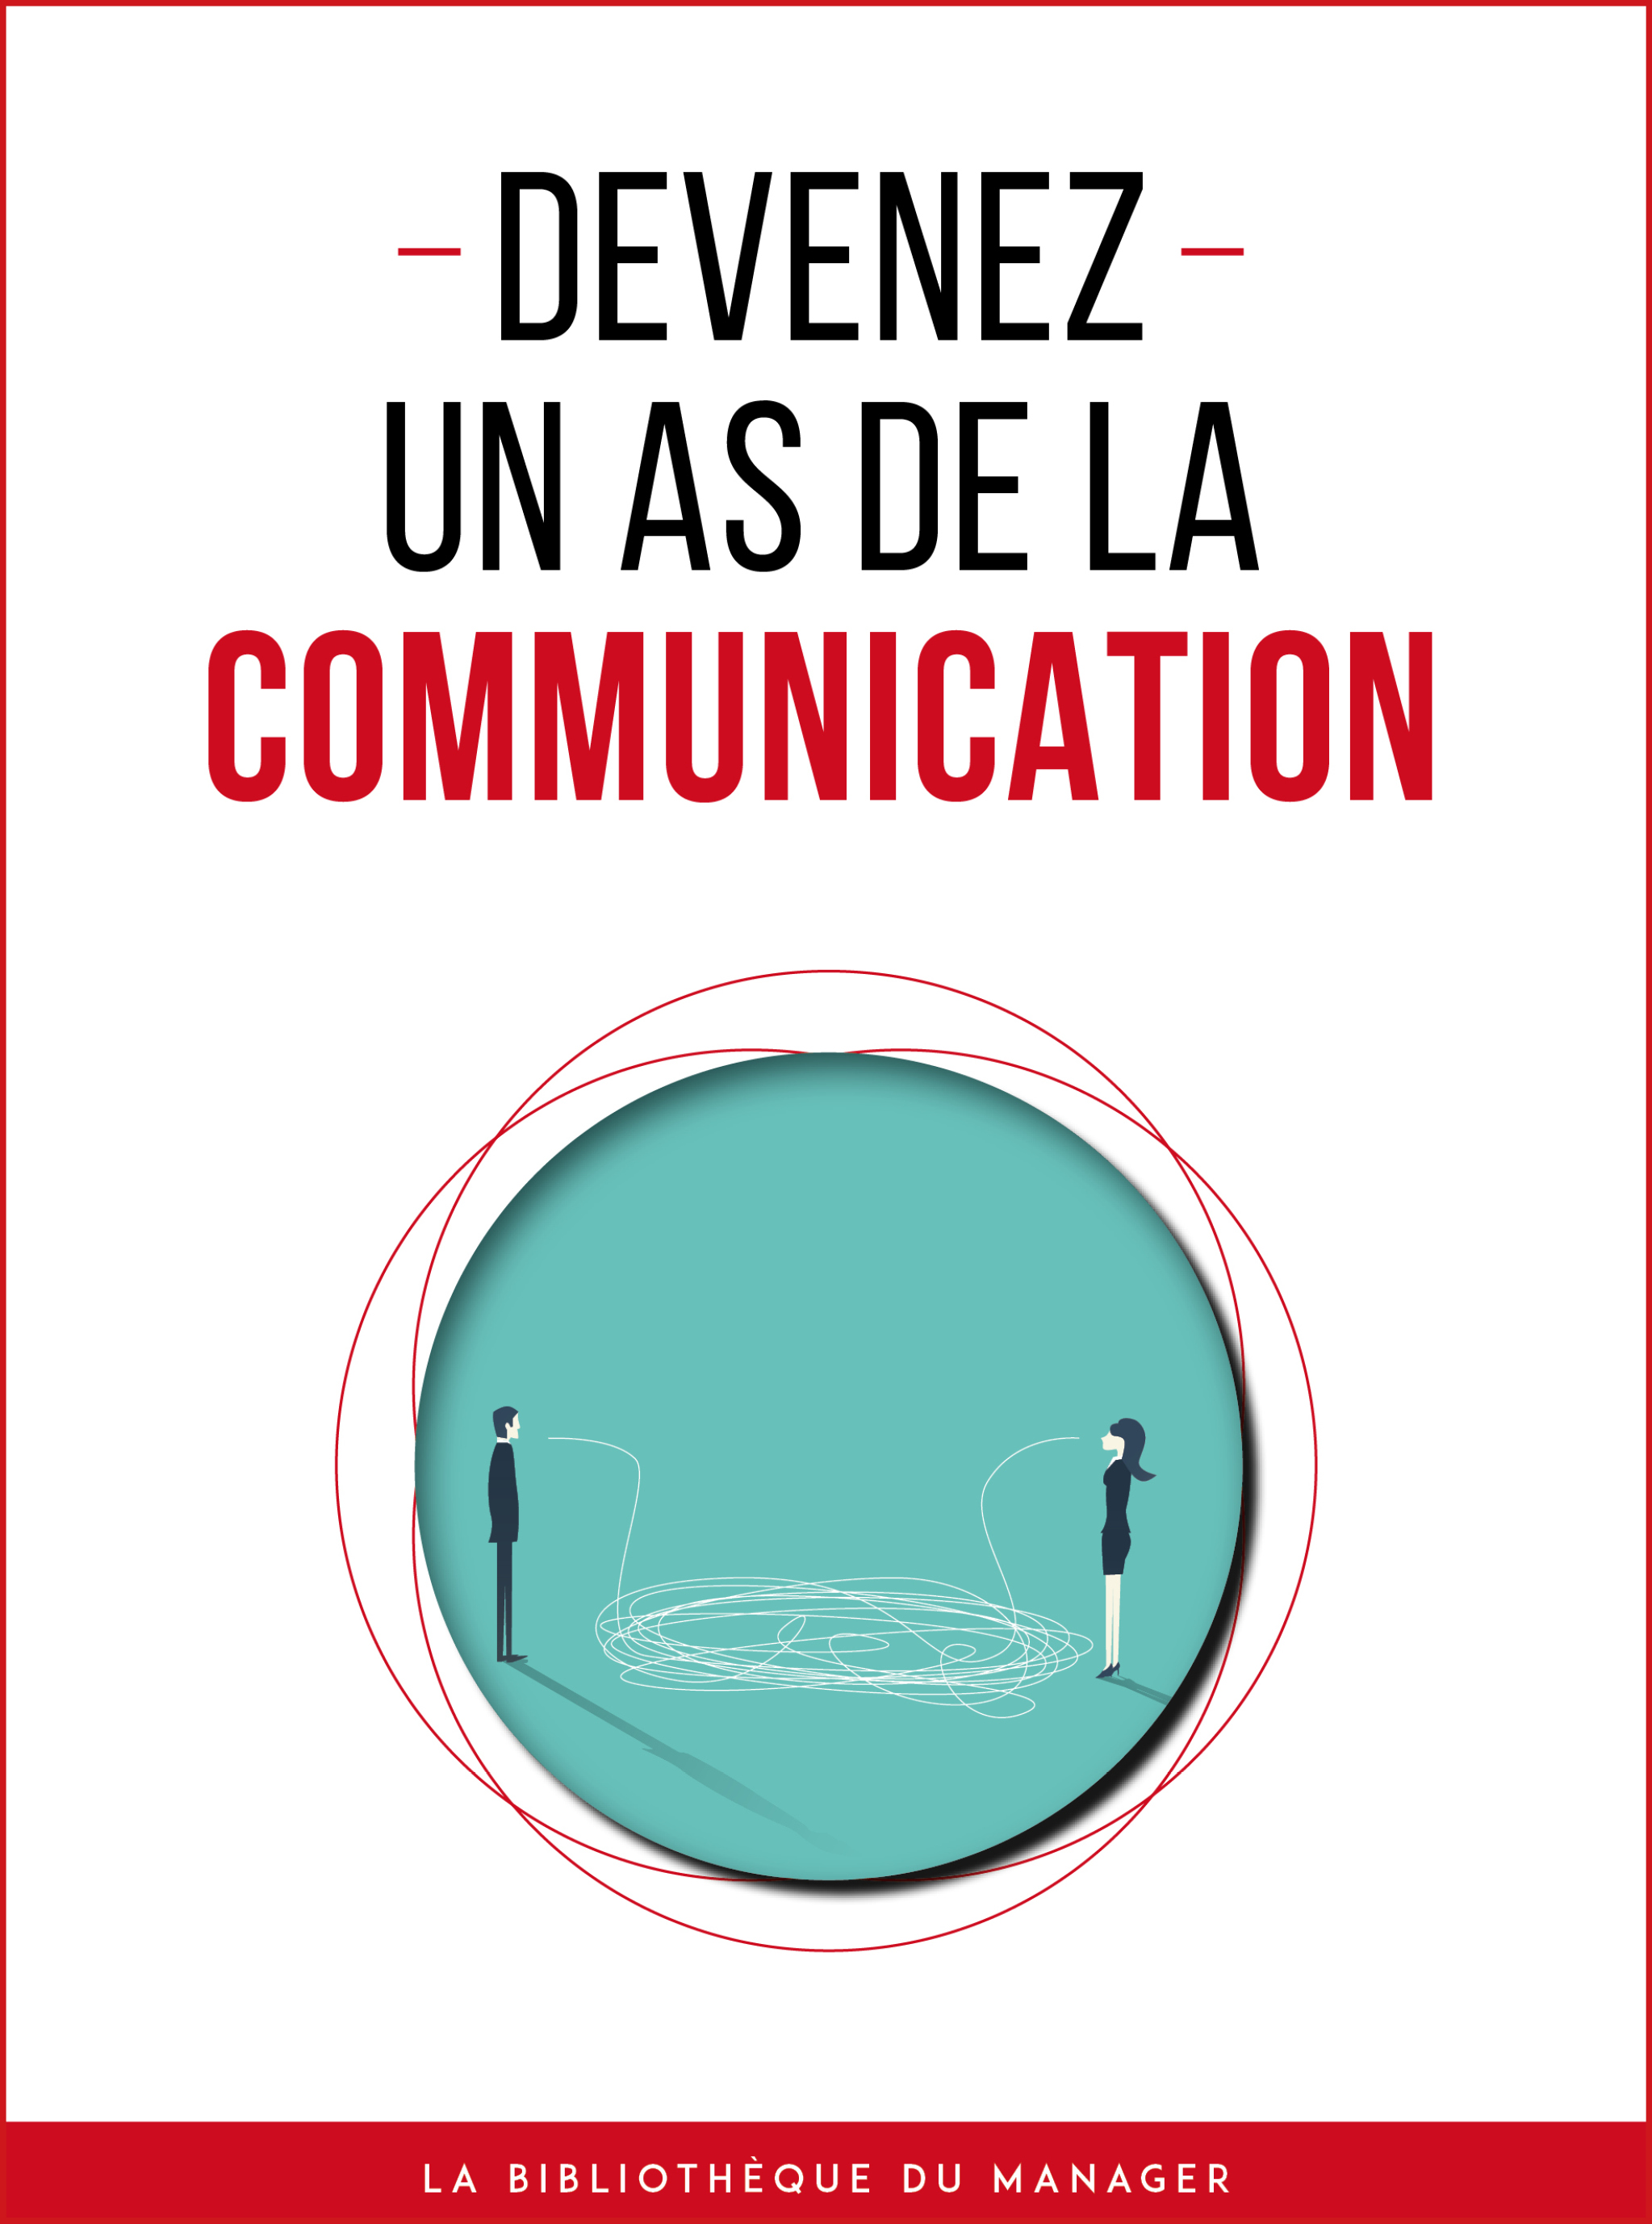 Devenez un as de la communication